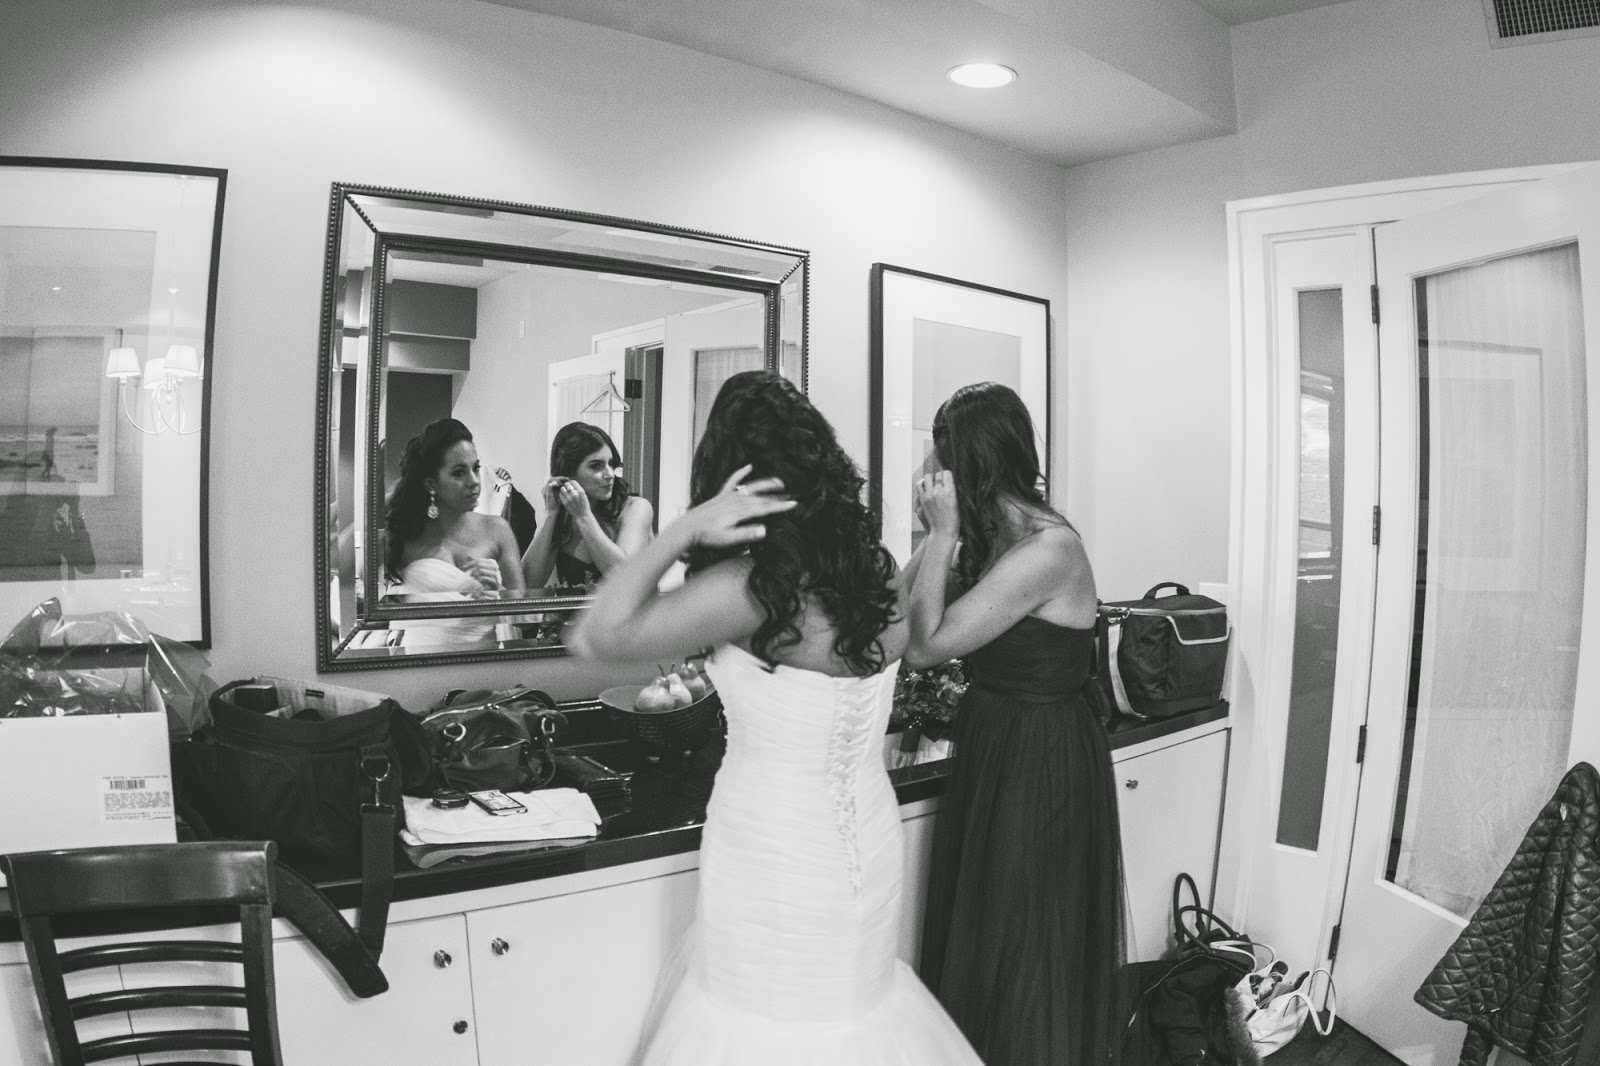 Getting ready wedding photos - cultivatedrambler.com